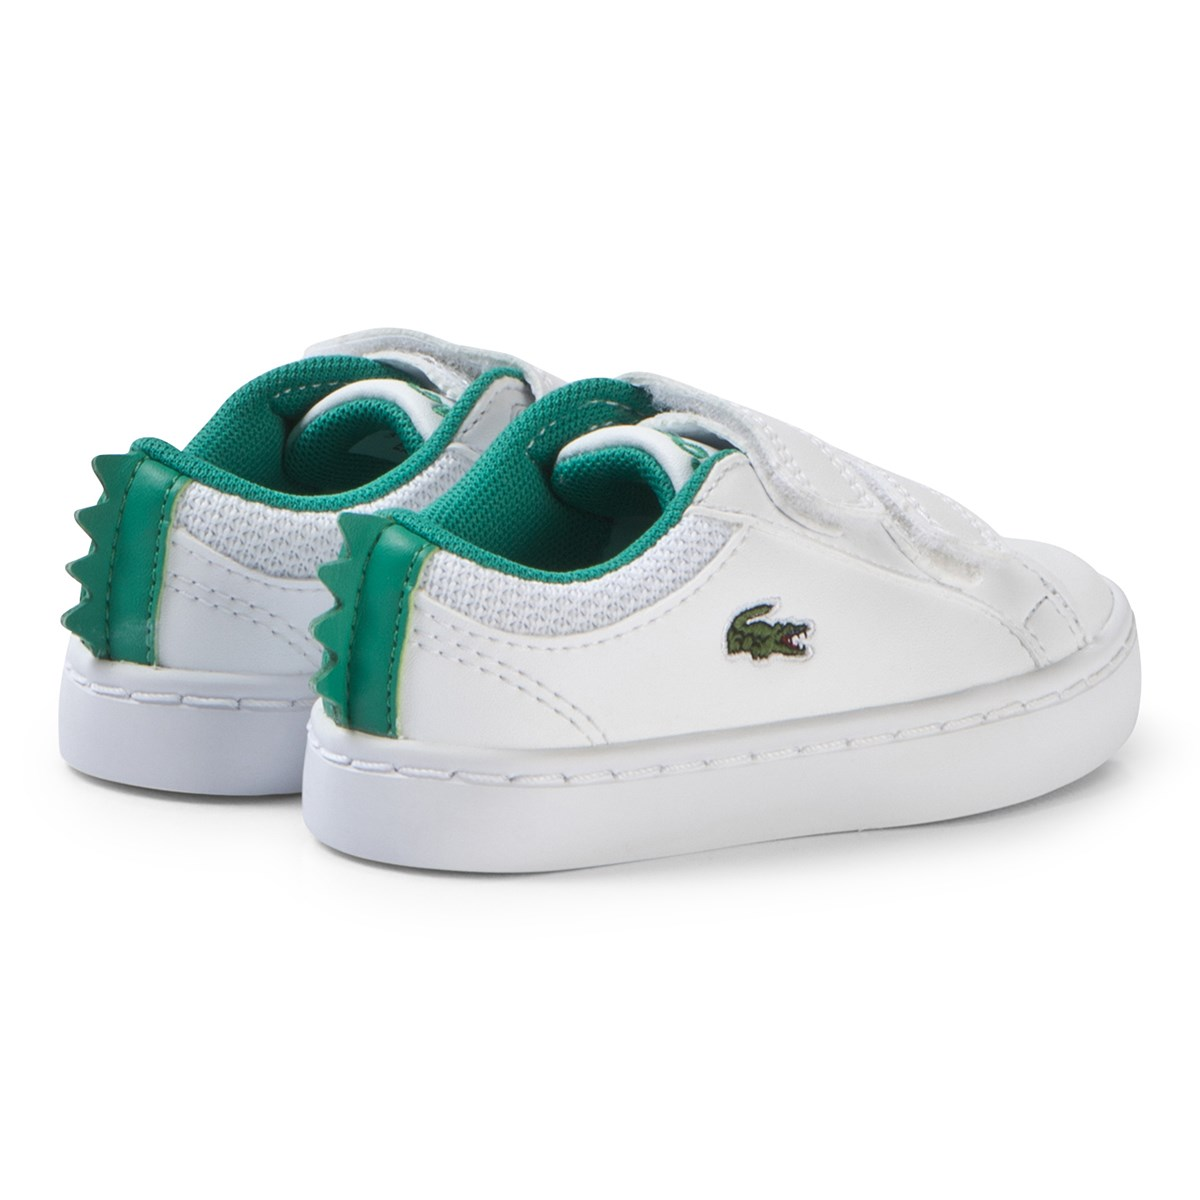 67af528c1b21 Lacoste - White with Green Crocodile Spine Straightset 119 Velcro Shoes -  Babyshop.com